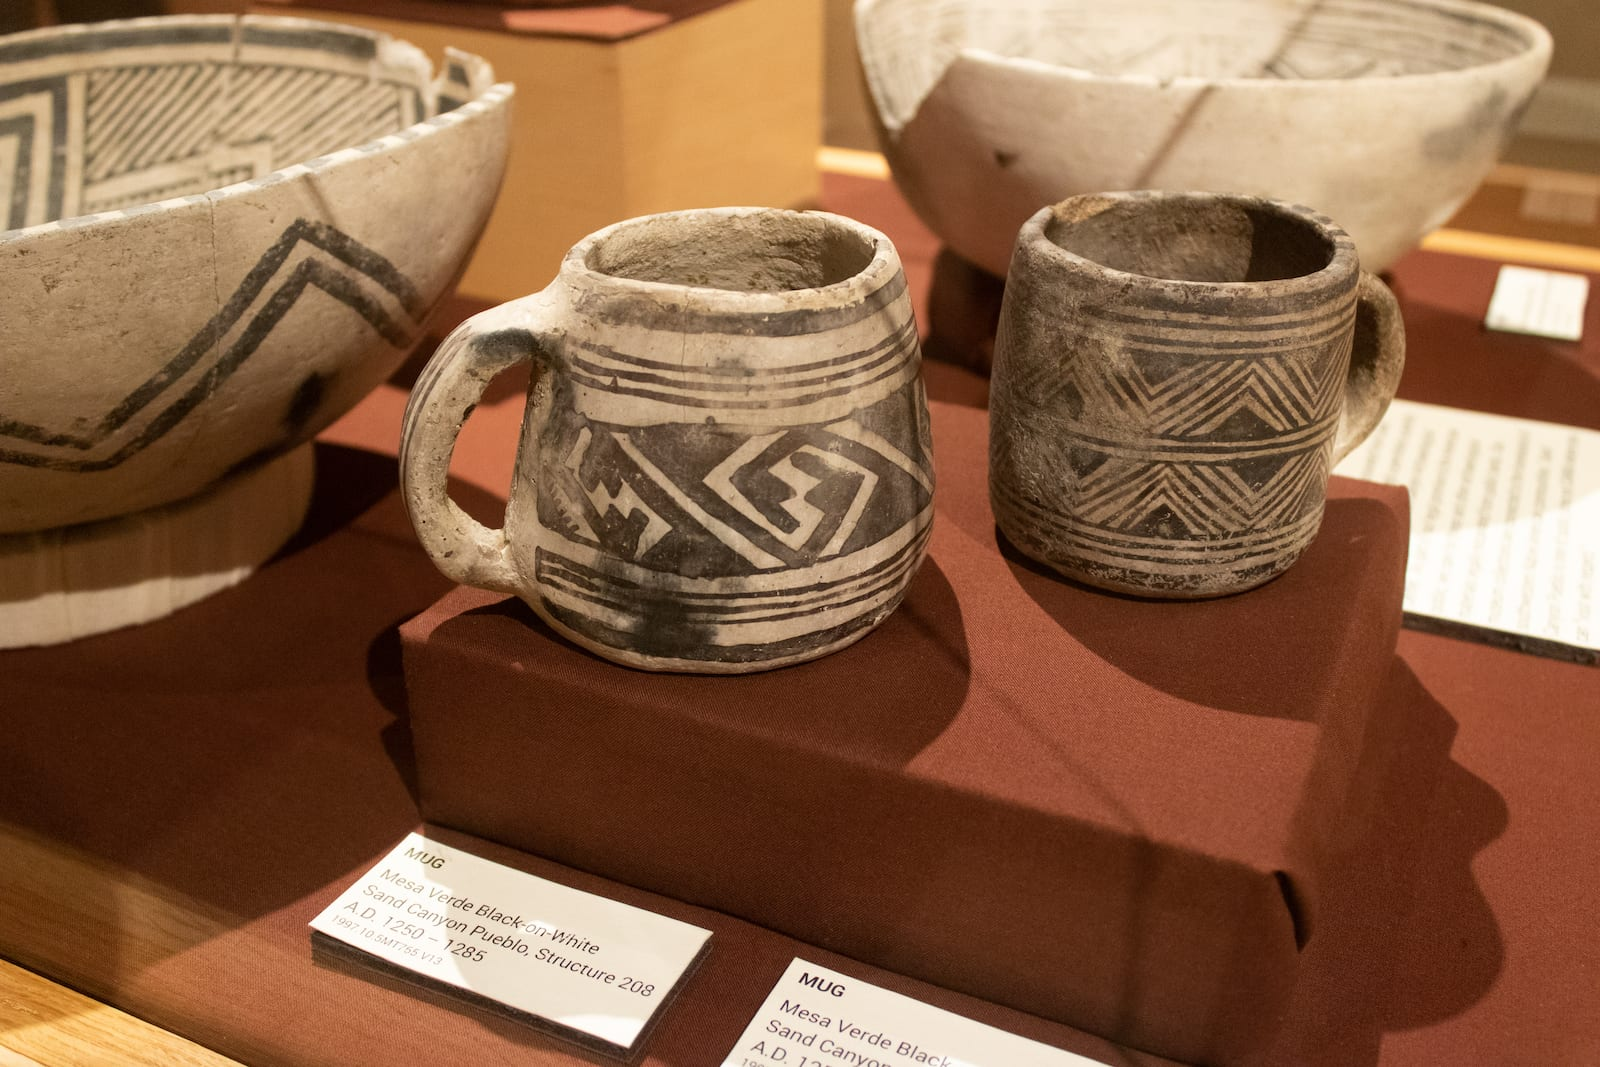 Exhibit at Canyons of the Ancients Visitor Center and Museum